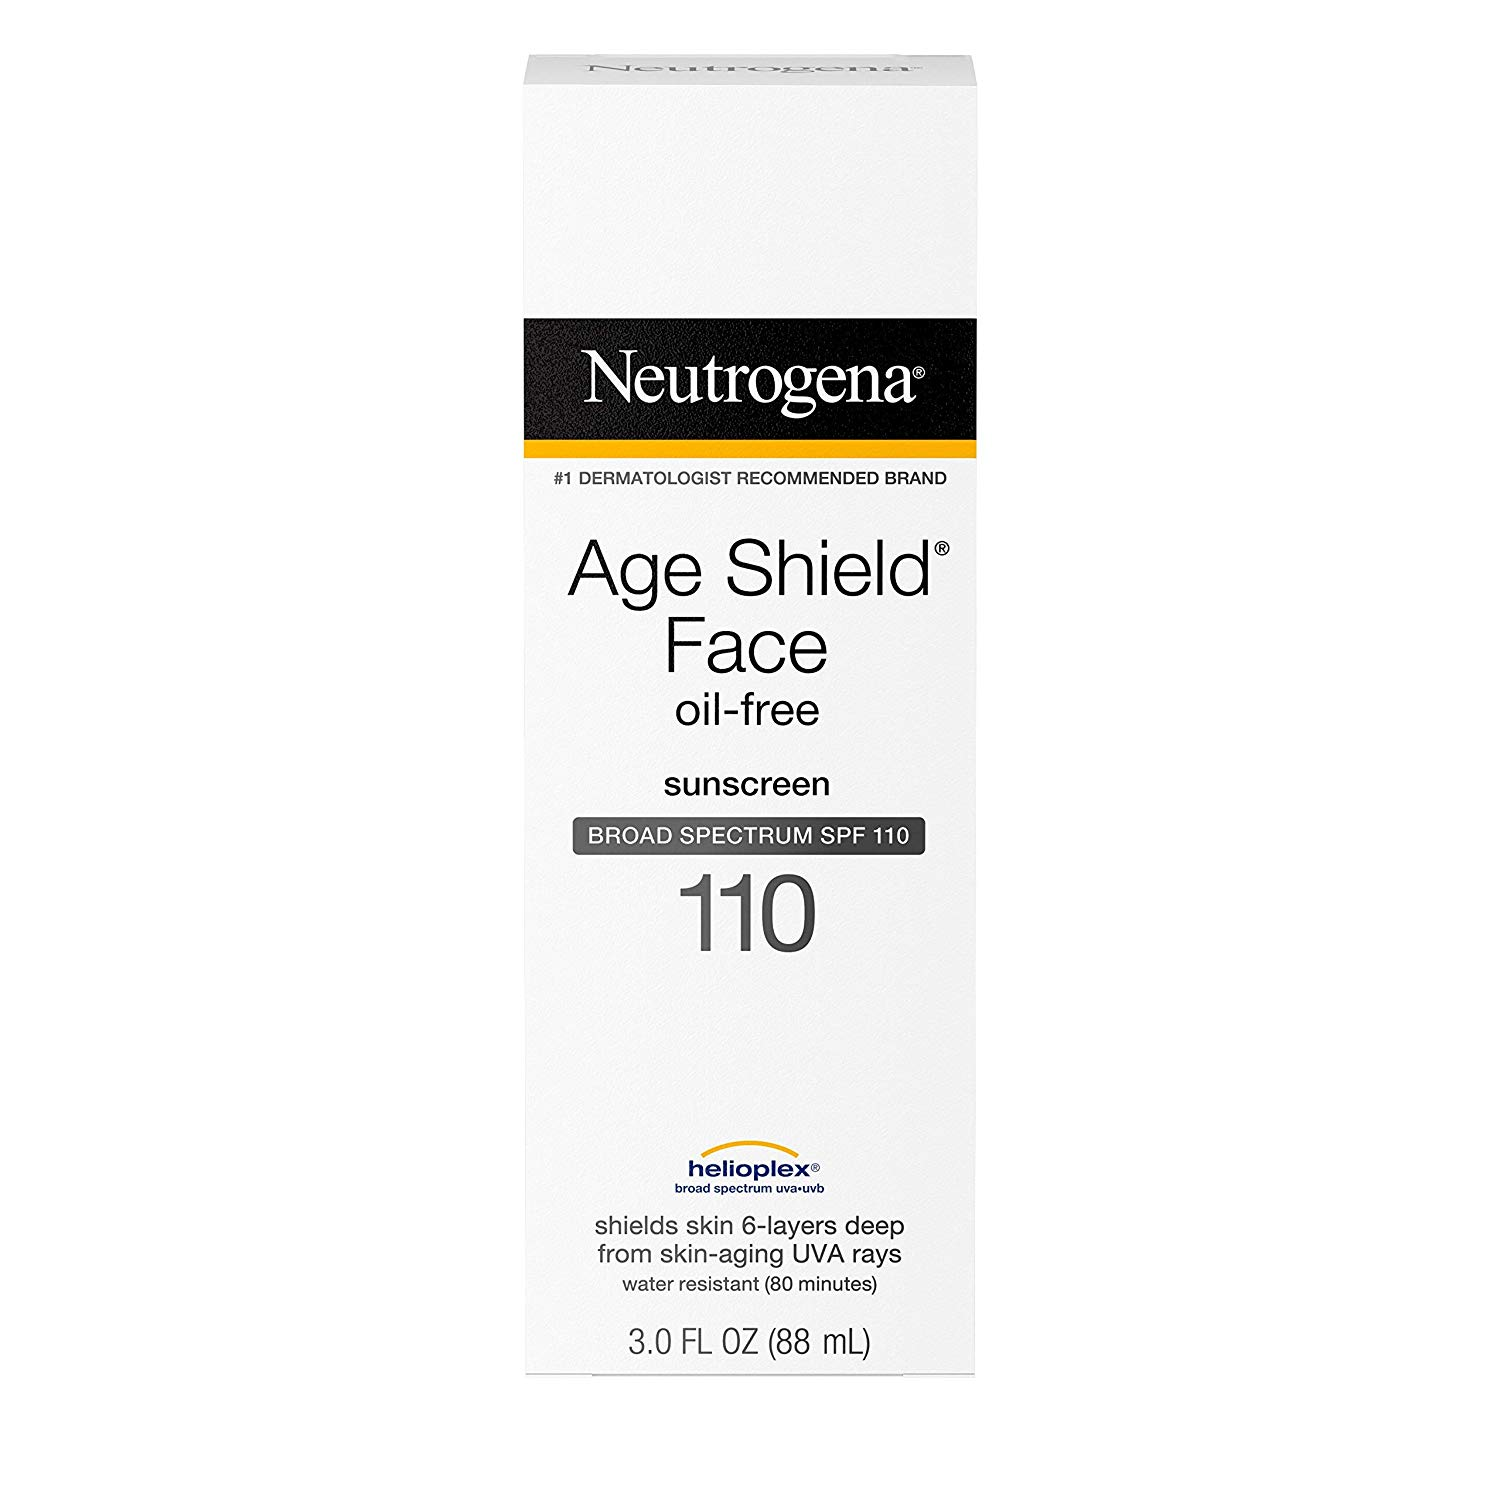 Neutrogena age shield face sunscreen with spf 110